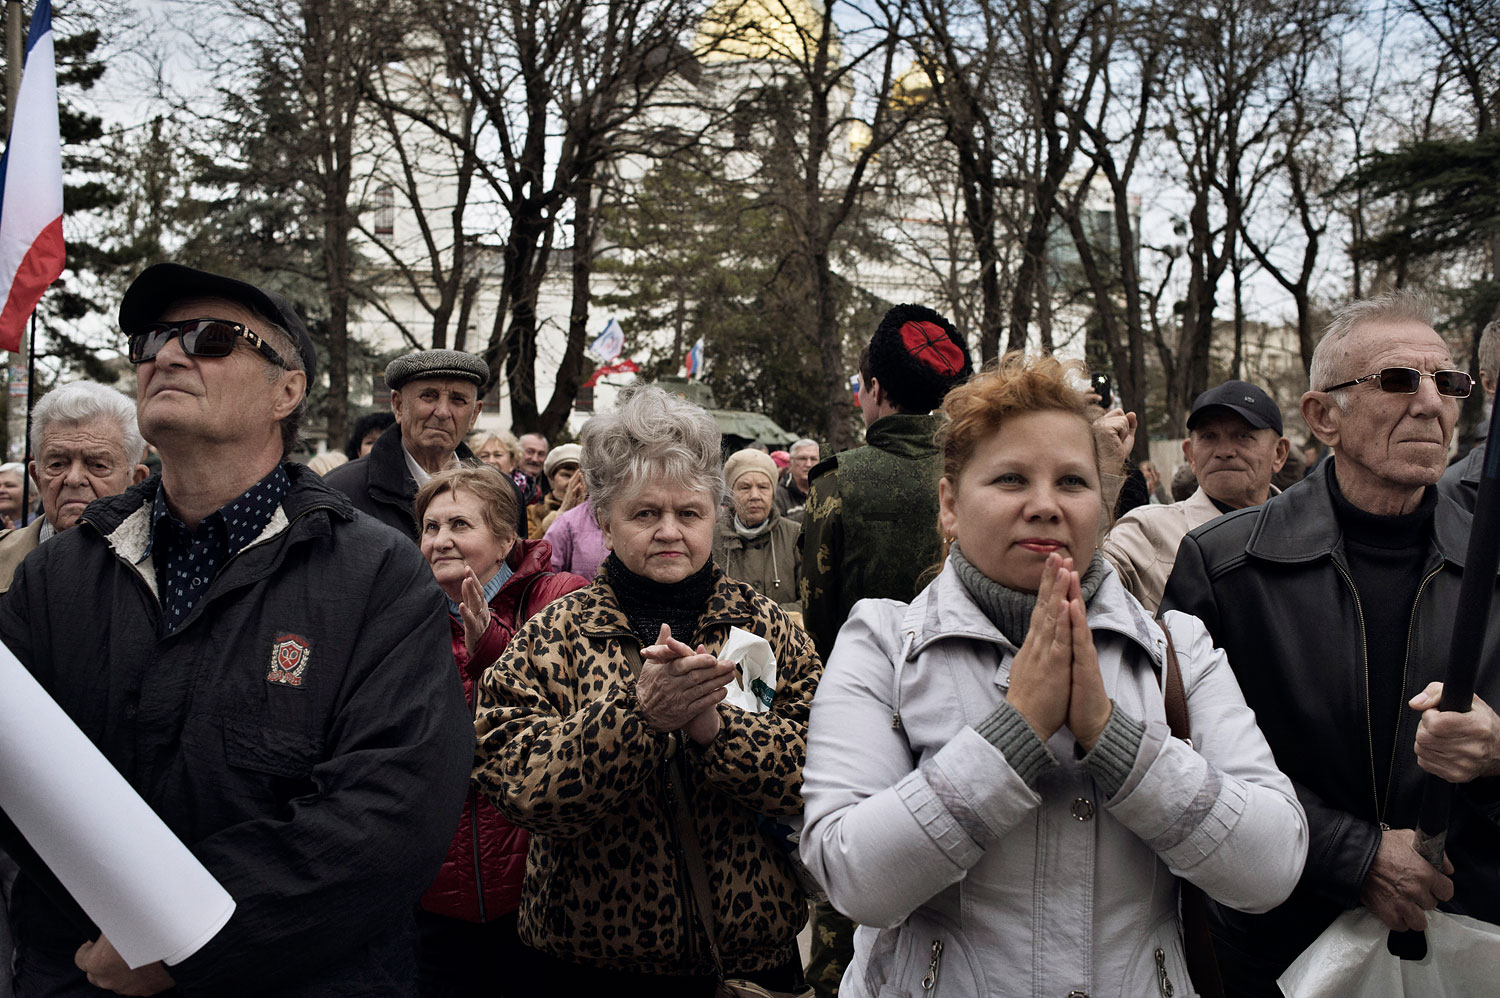 Pro-Russian demonstrators rally in front of the local parliament building in Crimea's capital Simferopol, March 6, 2014.